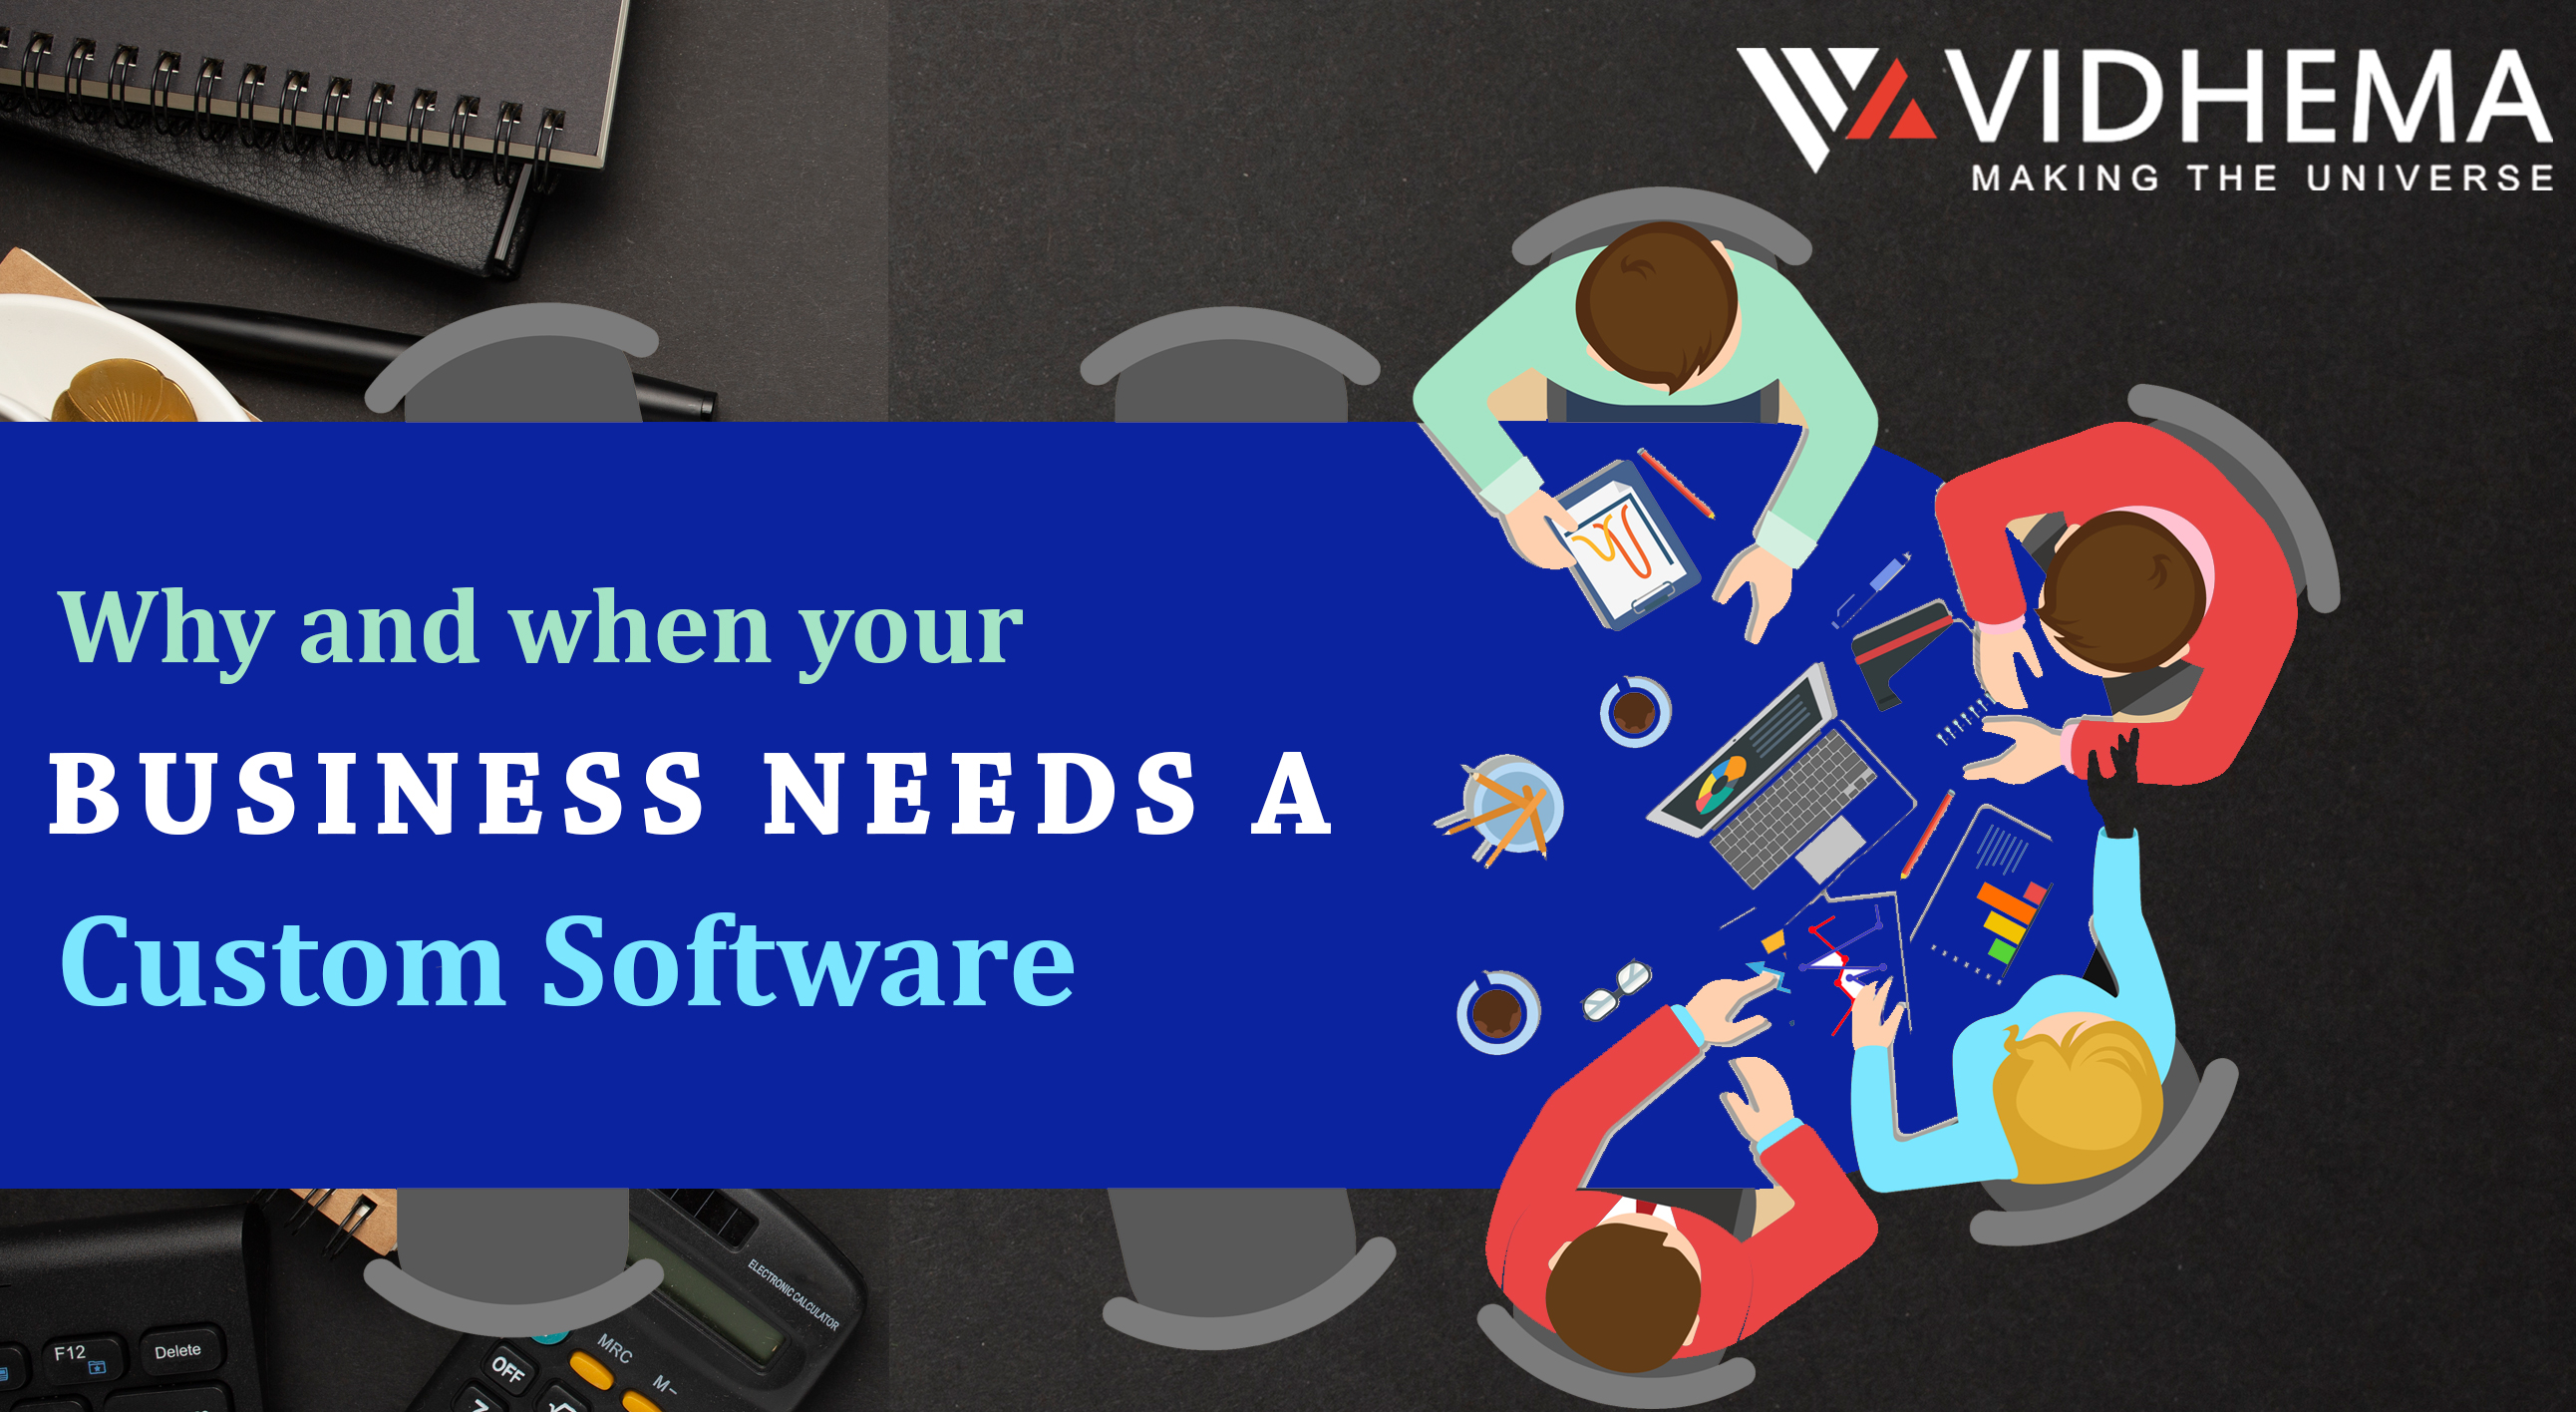 Why and when your business needs a custom software